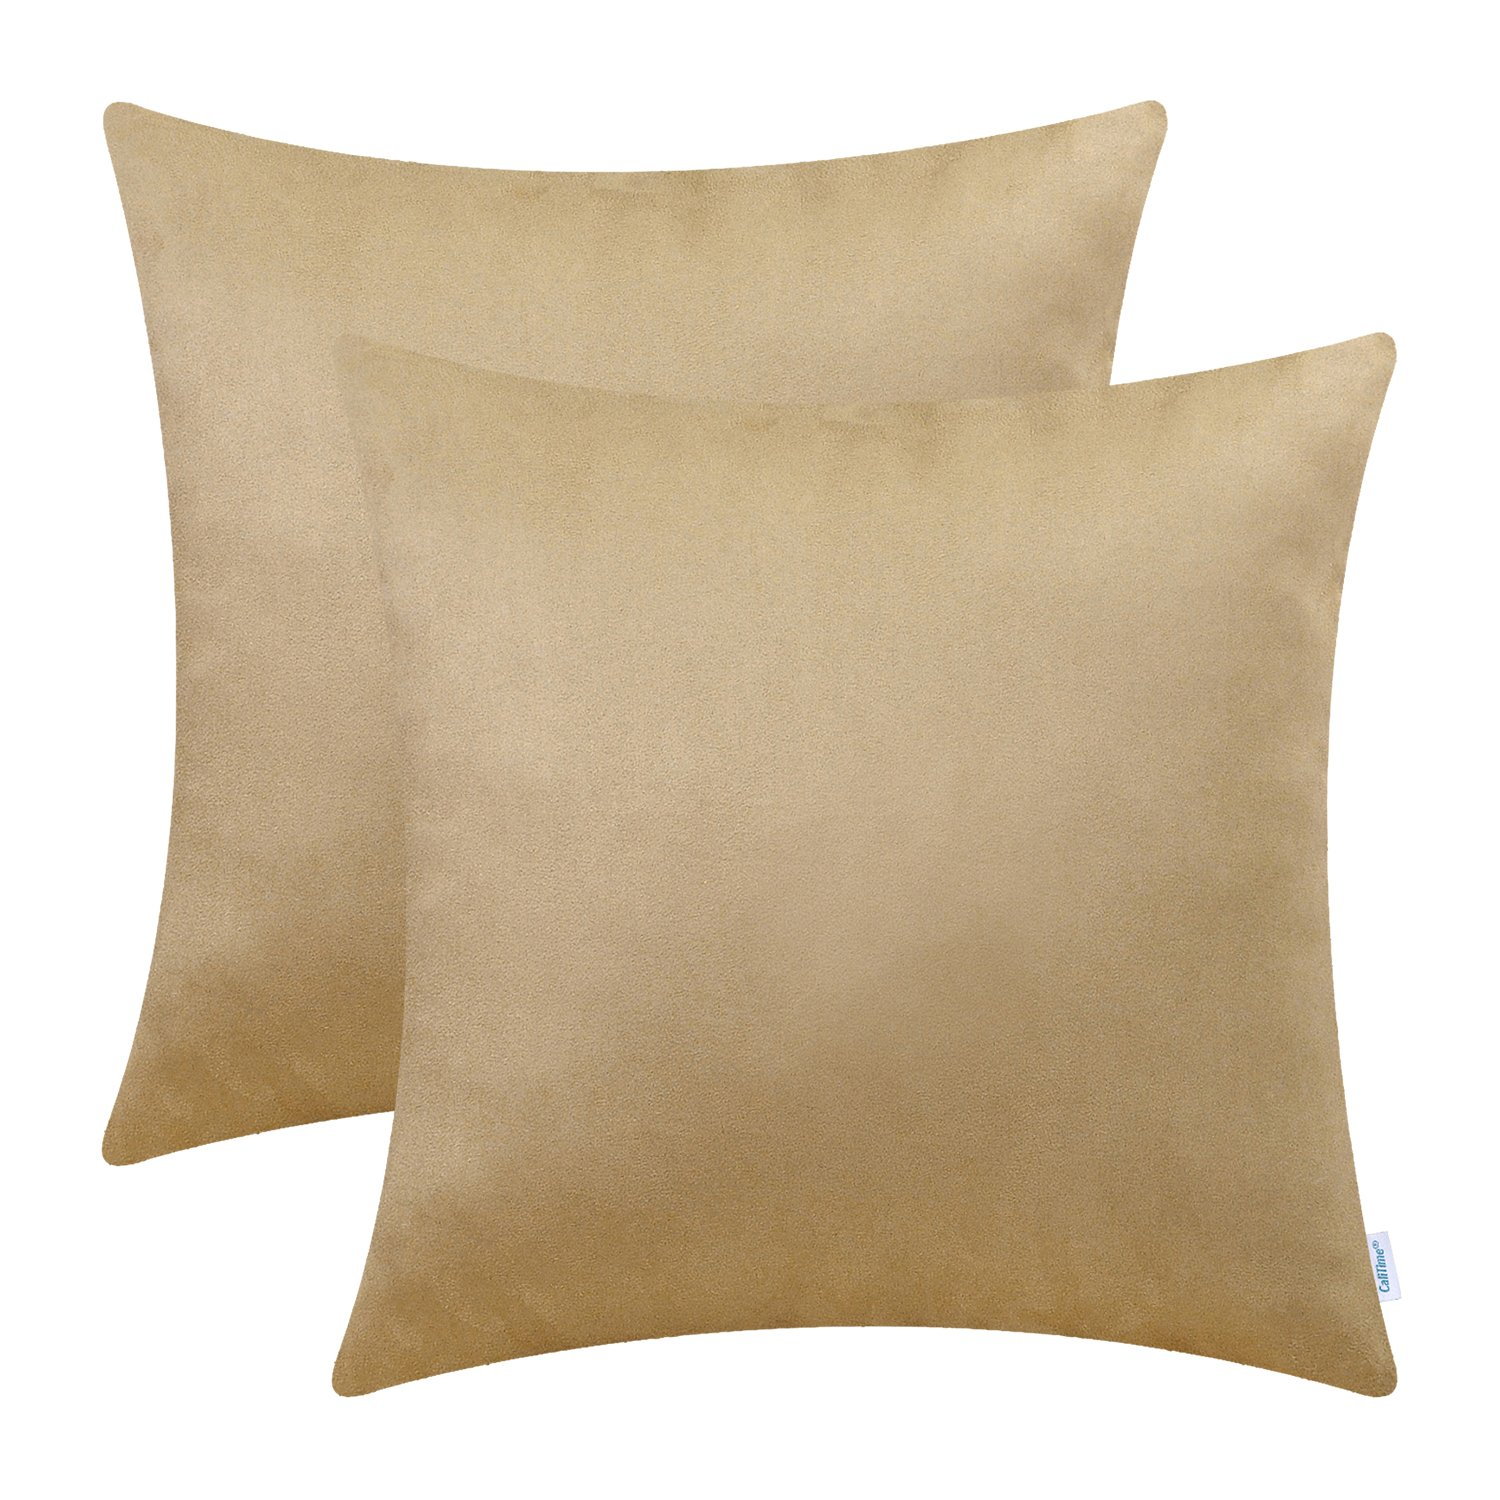 CaliTime Pack of 2 Cozy Throw Pillow Covers Cases for Couch Bed Sofa Super Soft Faux Suede Solid Color Both Sides 18 X 18 Inches Tan